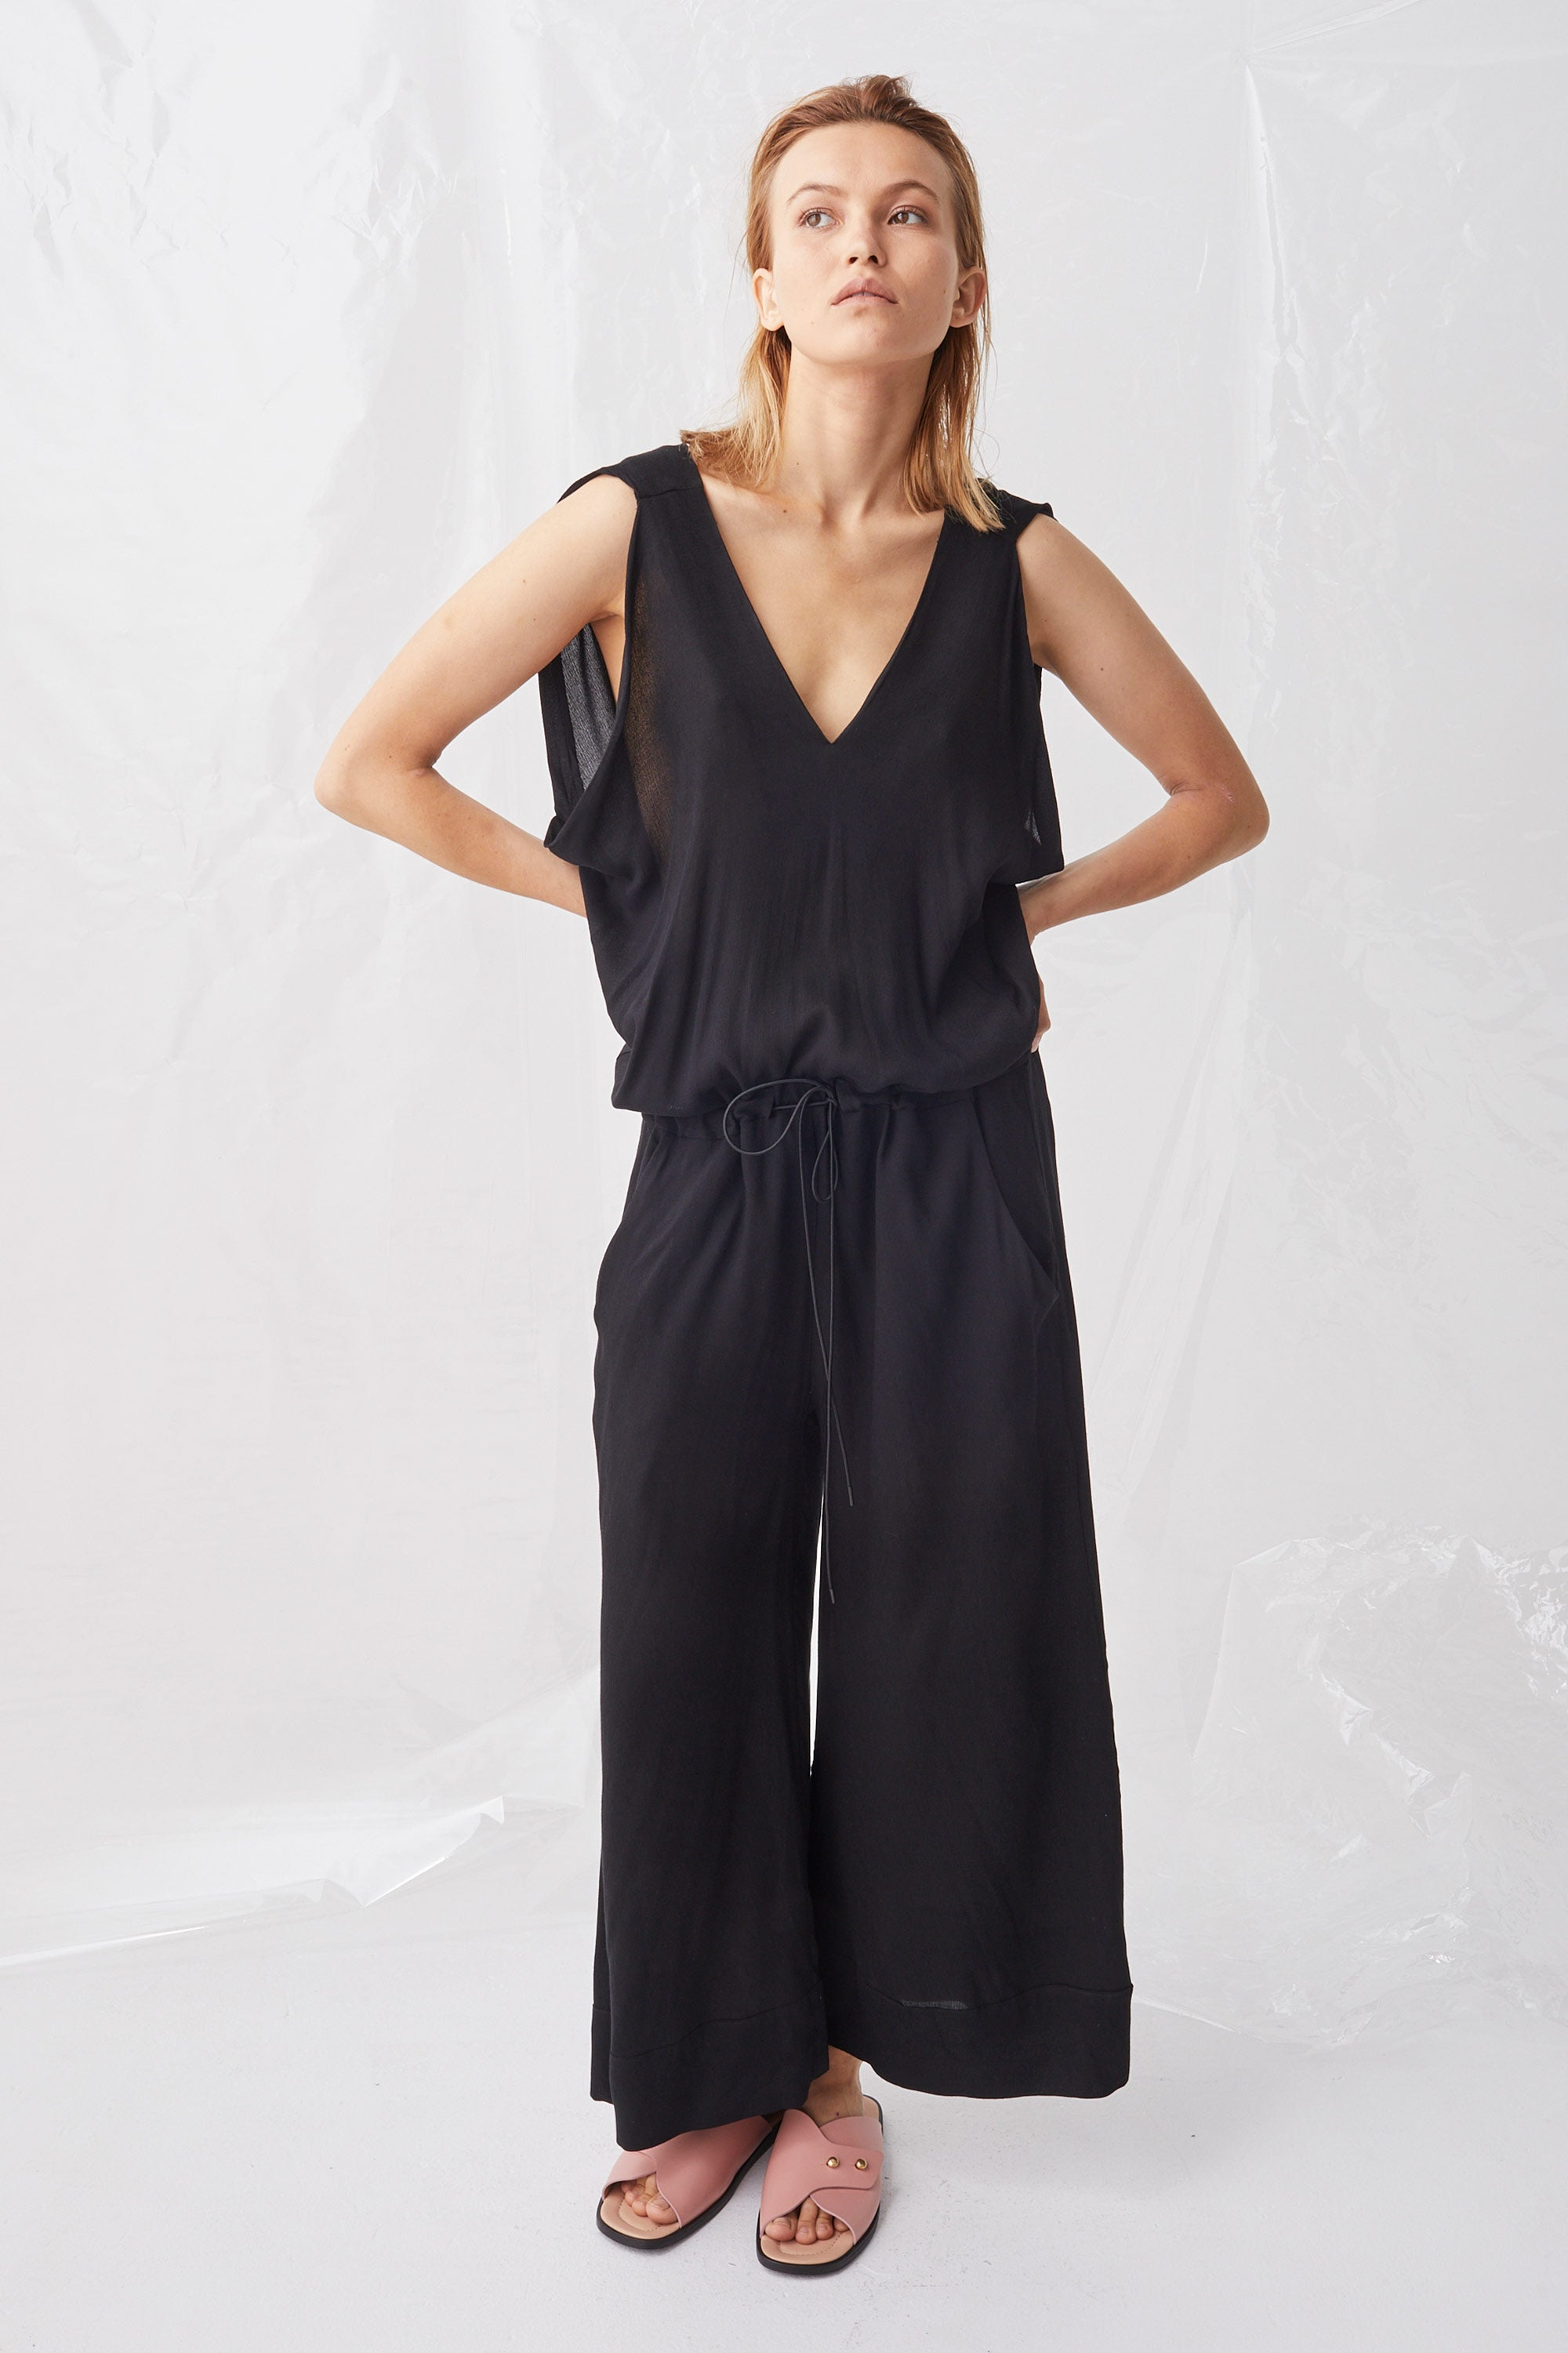 Ricochet NZ Fashion Designer Clothing Boutique SS18 Joben Jumpsuit Made in NZ